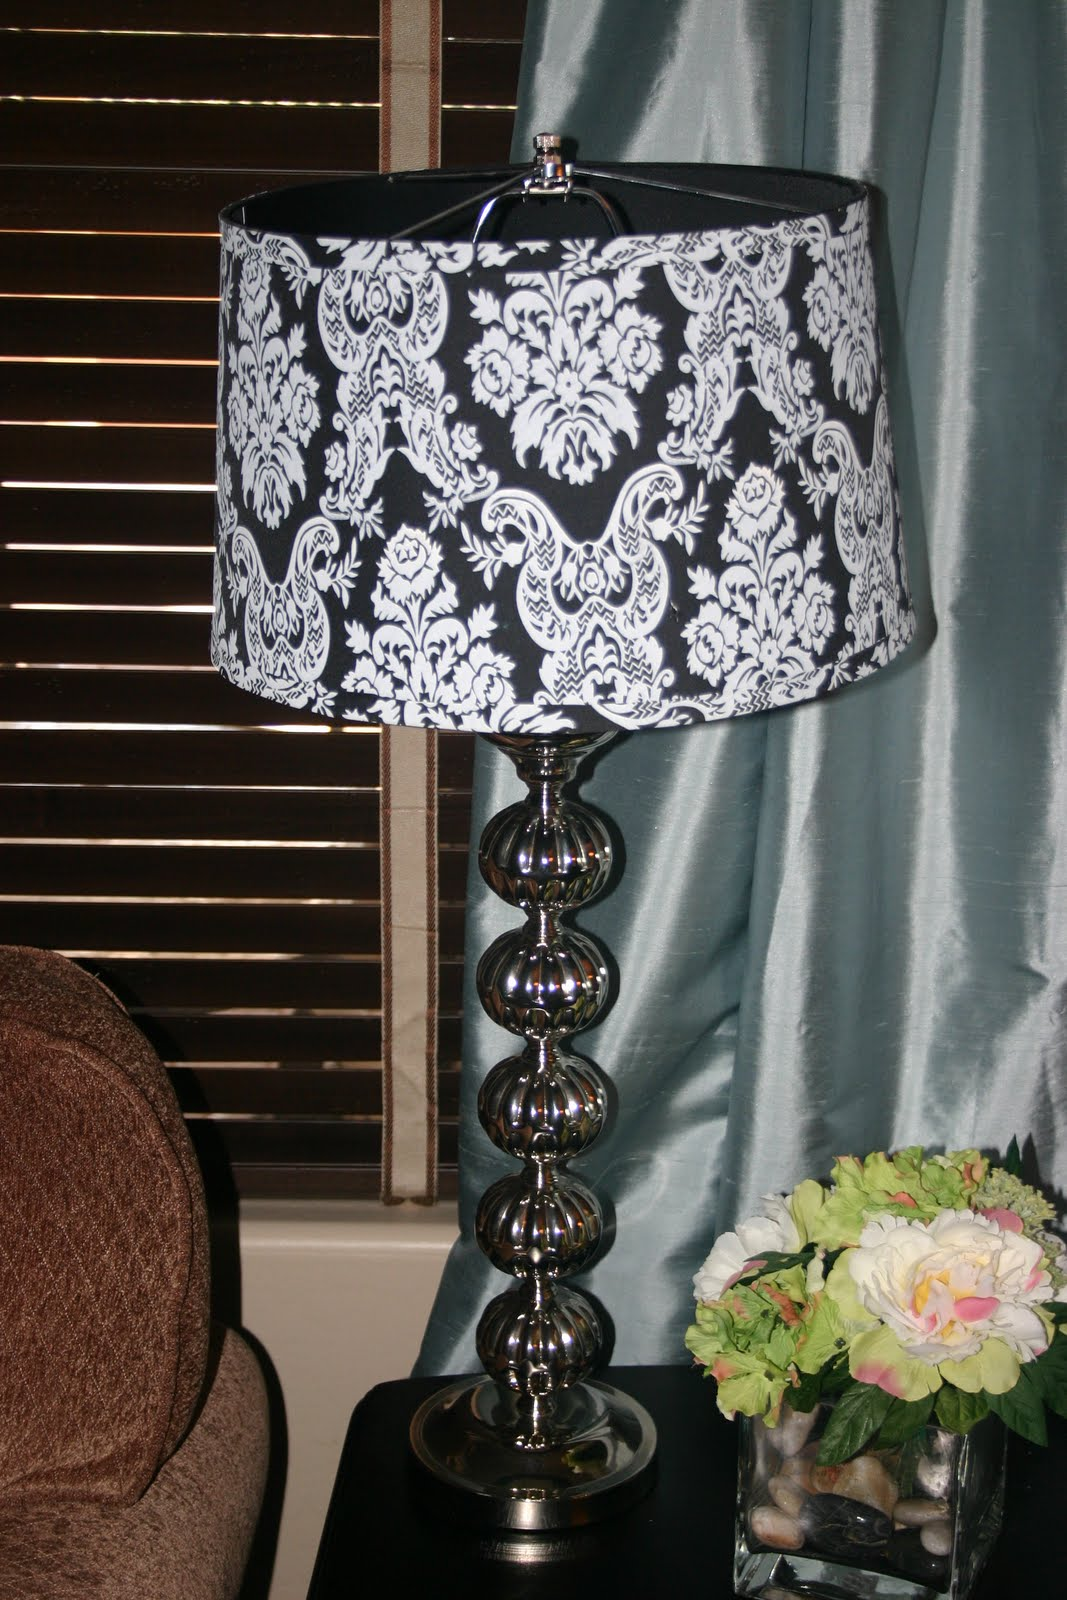 Jenny 39 s creative fix lamp shade redo - Creative lamp shades ...